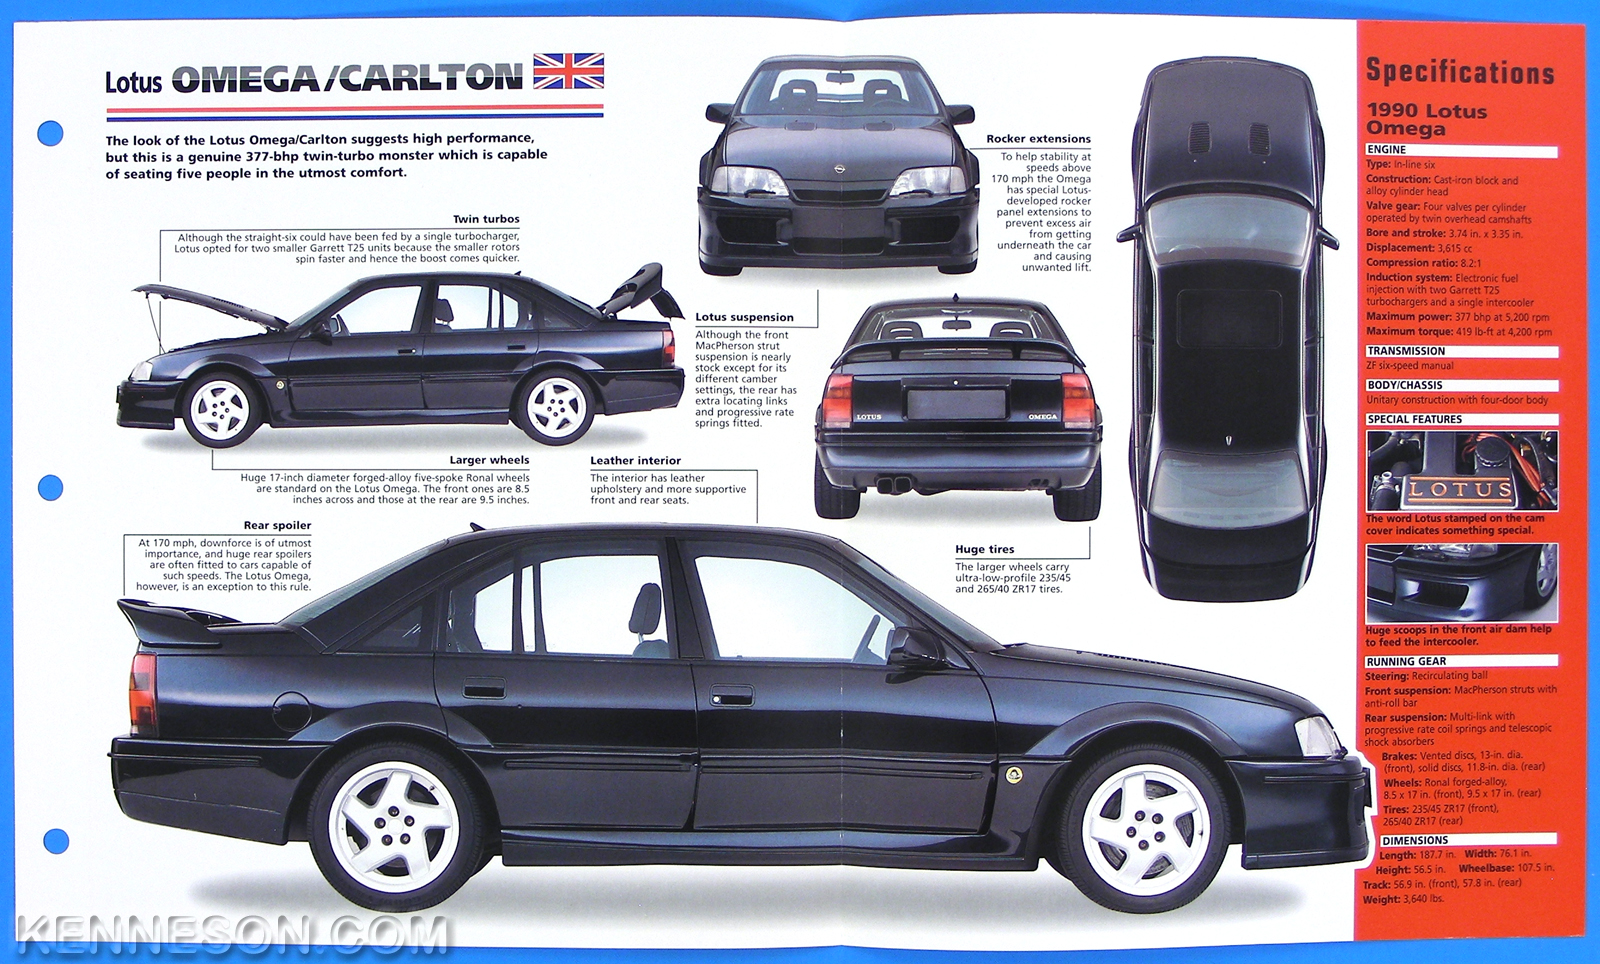 lotus omega carlton uk 1990 1992 spec sheet brochure poster imp hot cars 1 18 ebay. Black Bedroom Furniture Sets. Home Design Ideas